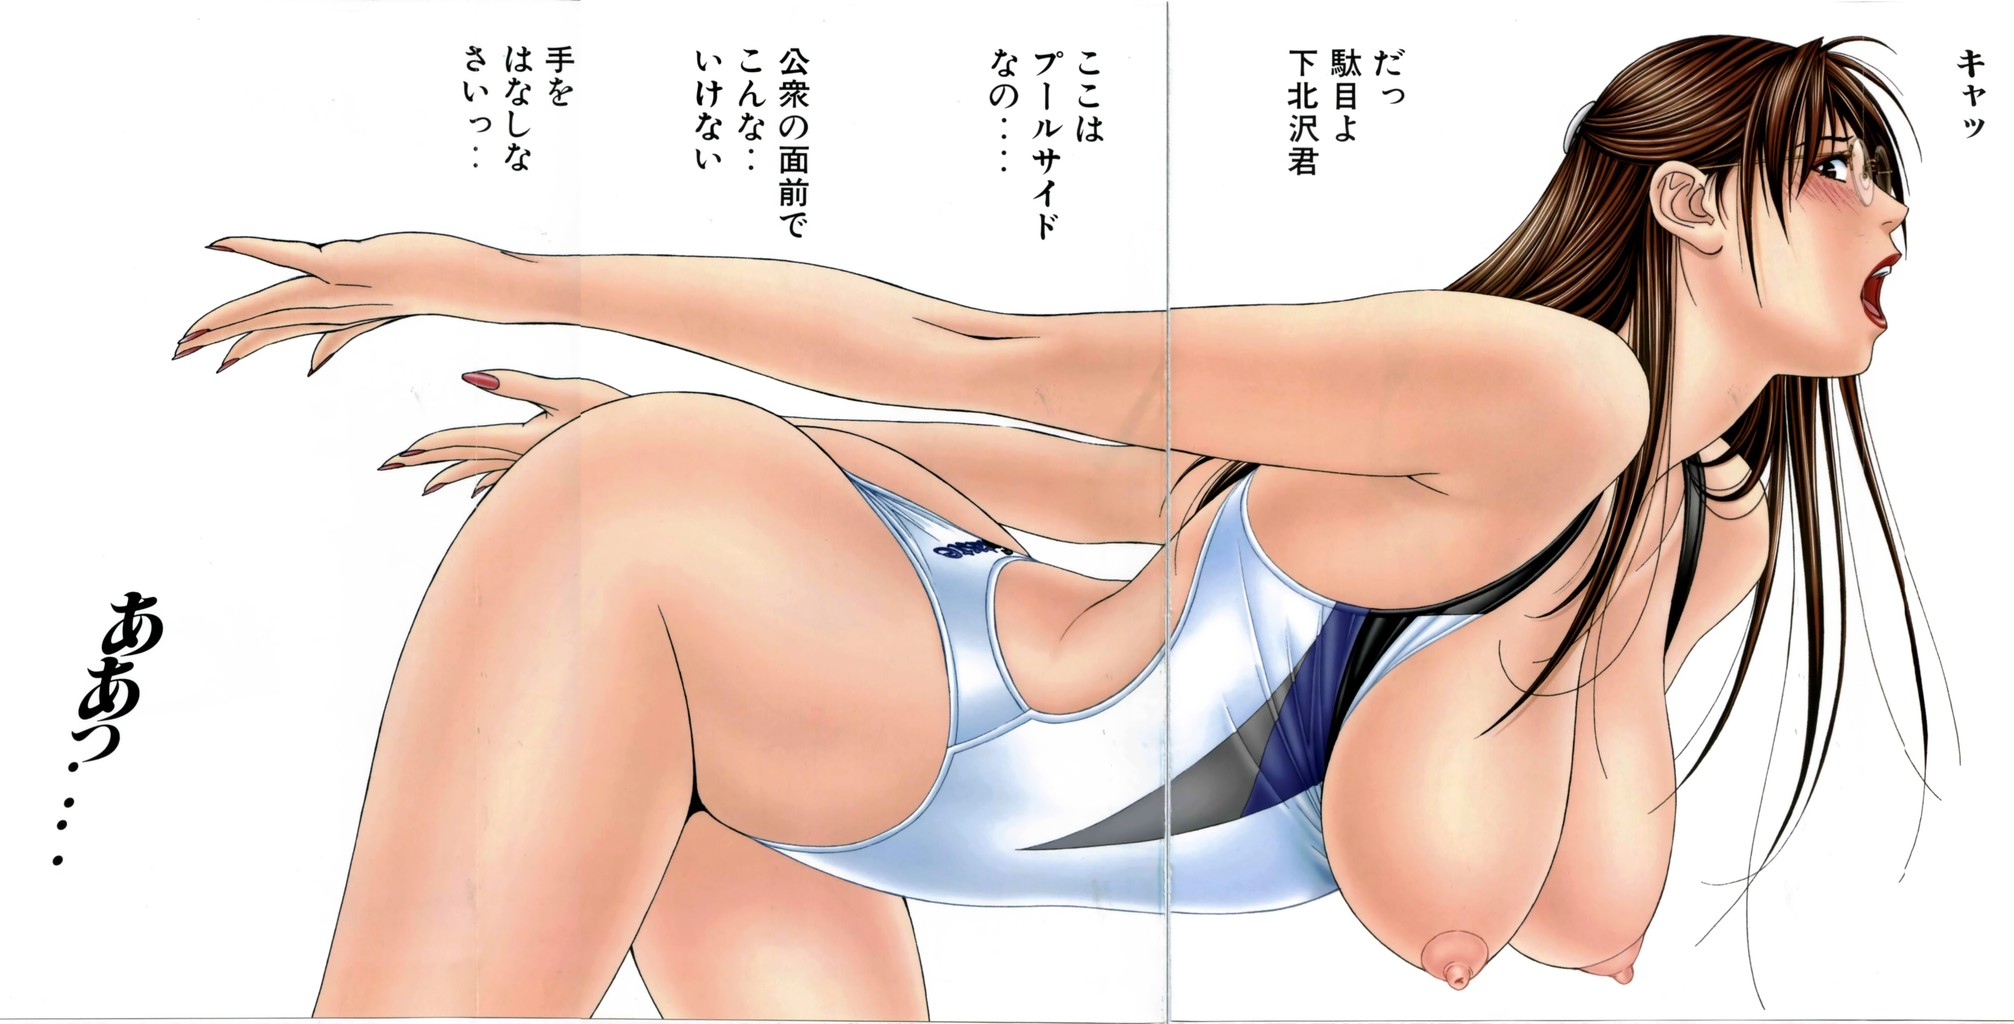 hanging_breasts leaning_forward362